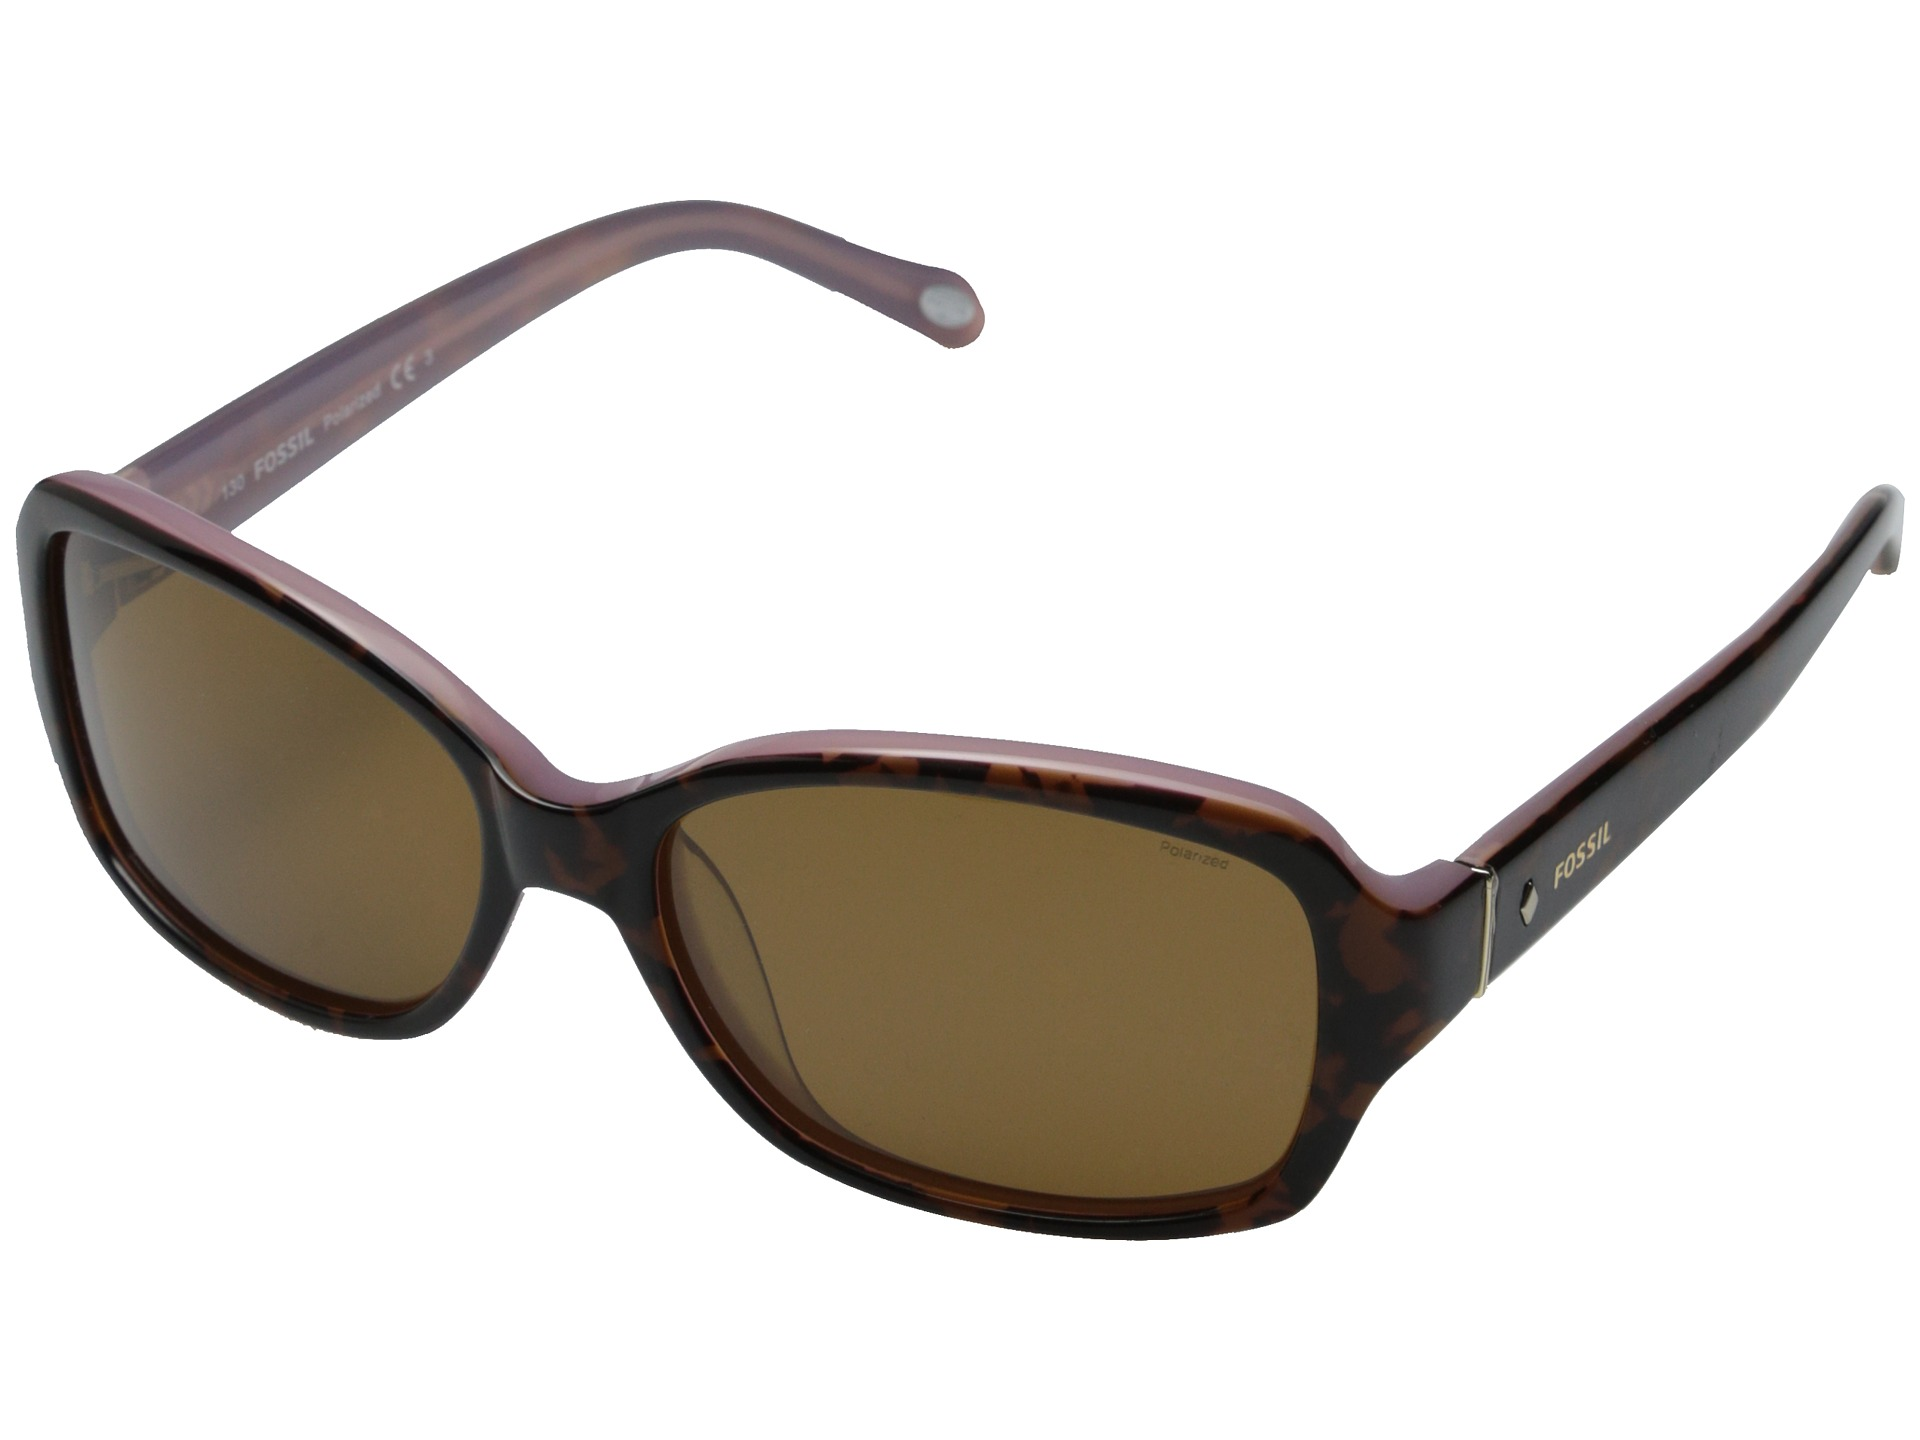 439b188799f Fossil Sunglasses Uv Protection - Bitterroot Public Library